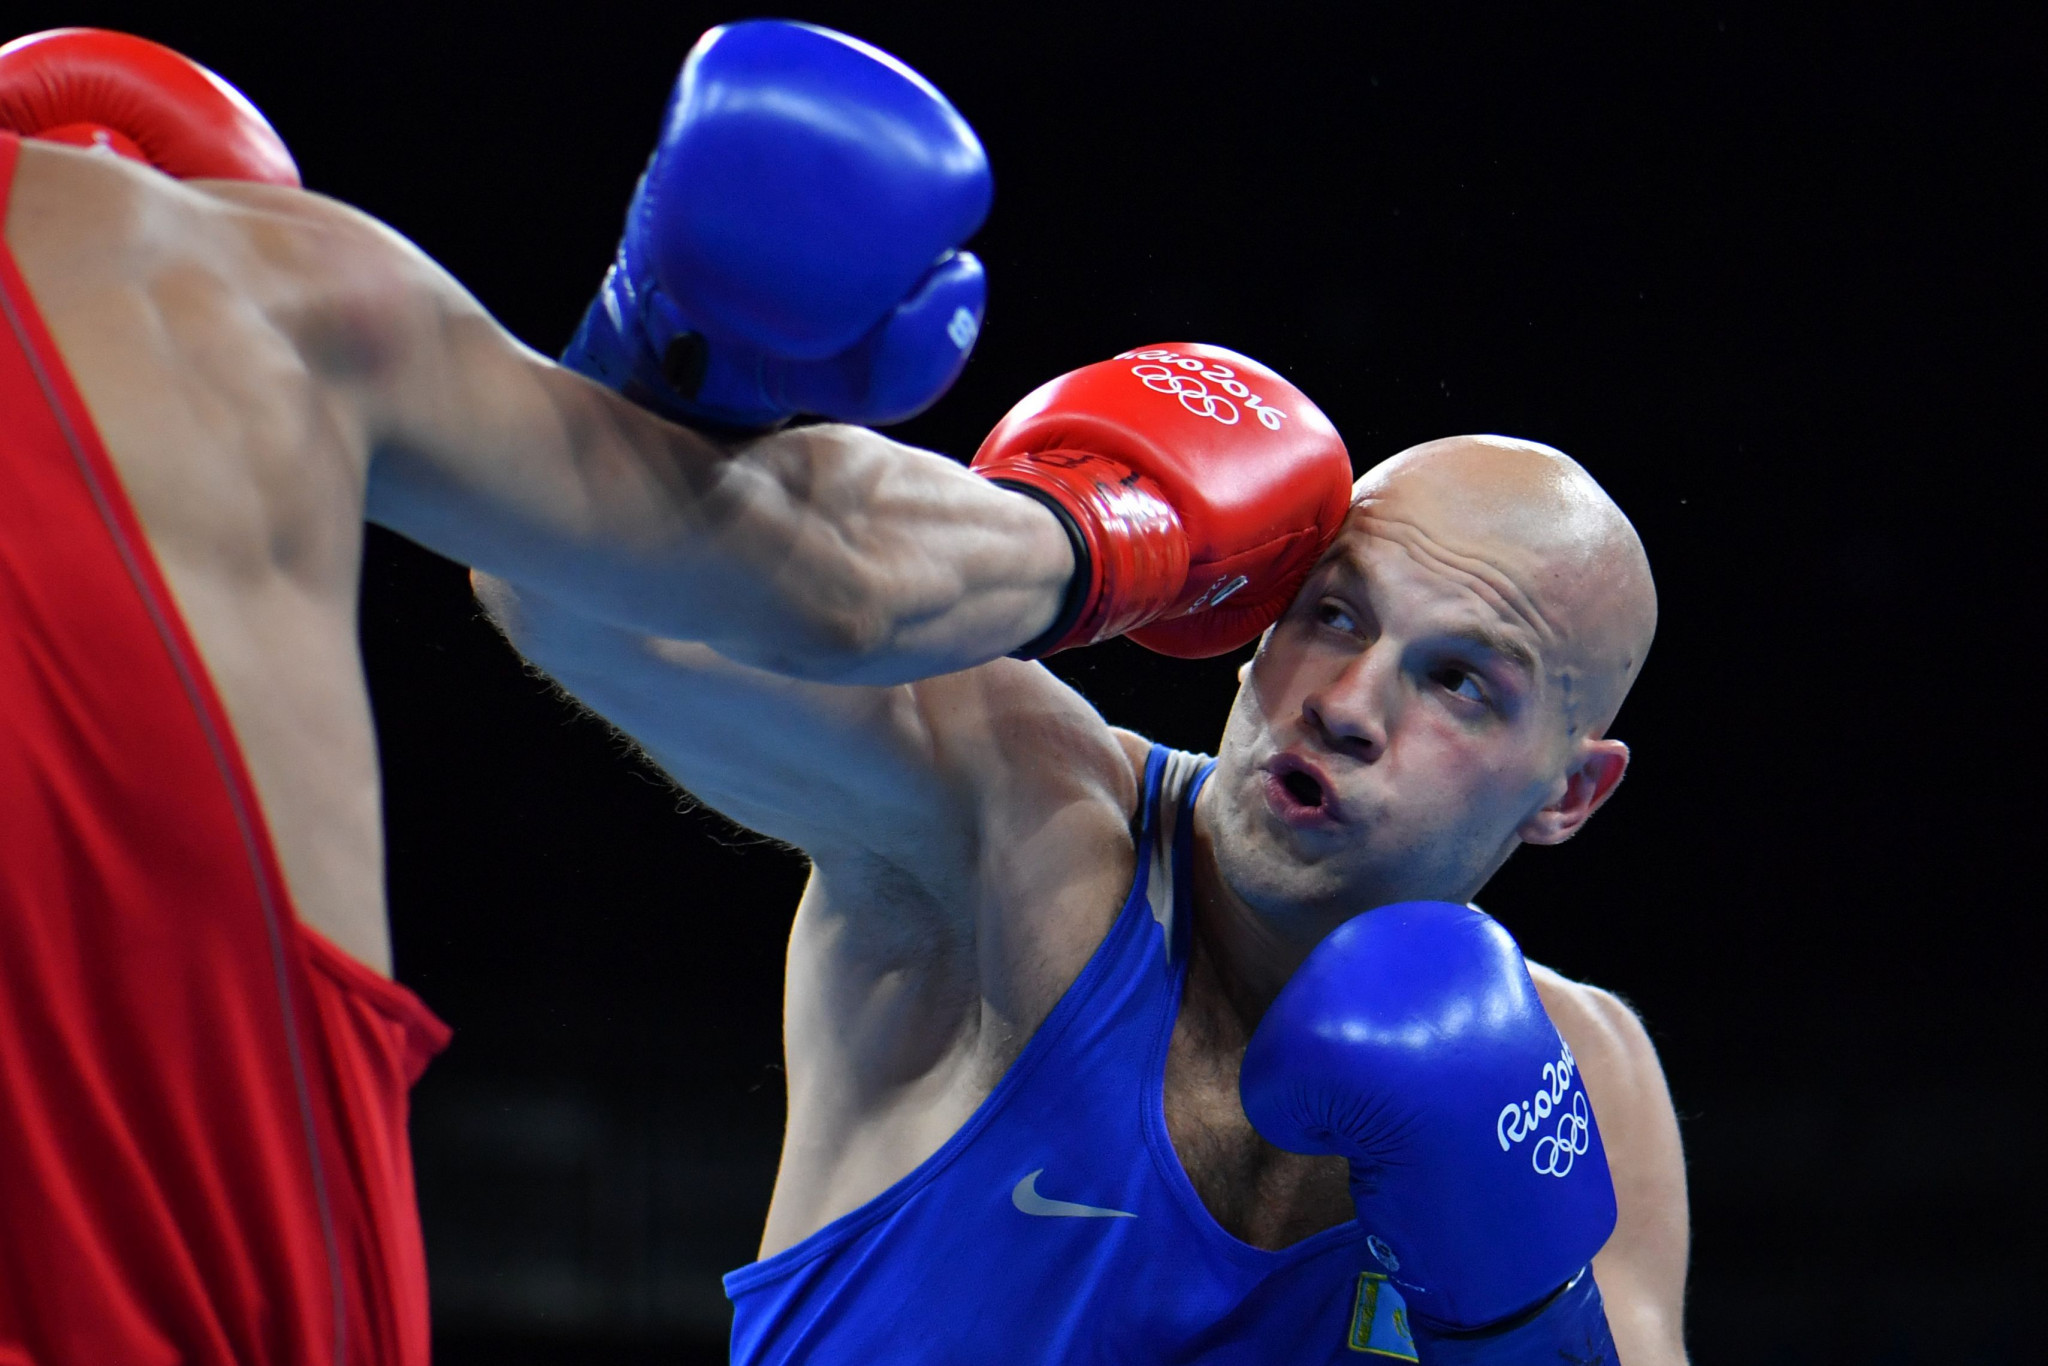 Kazakhstan's Olympic boxers to participate in training camps in the US and Cuba